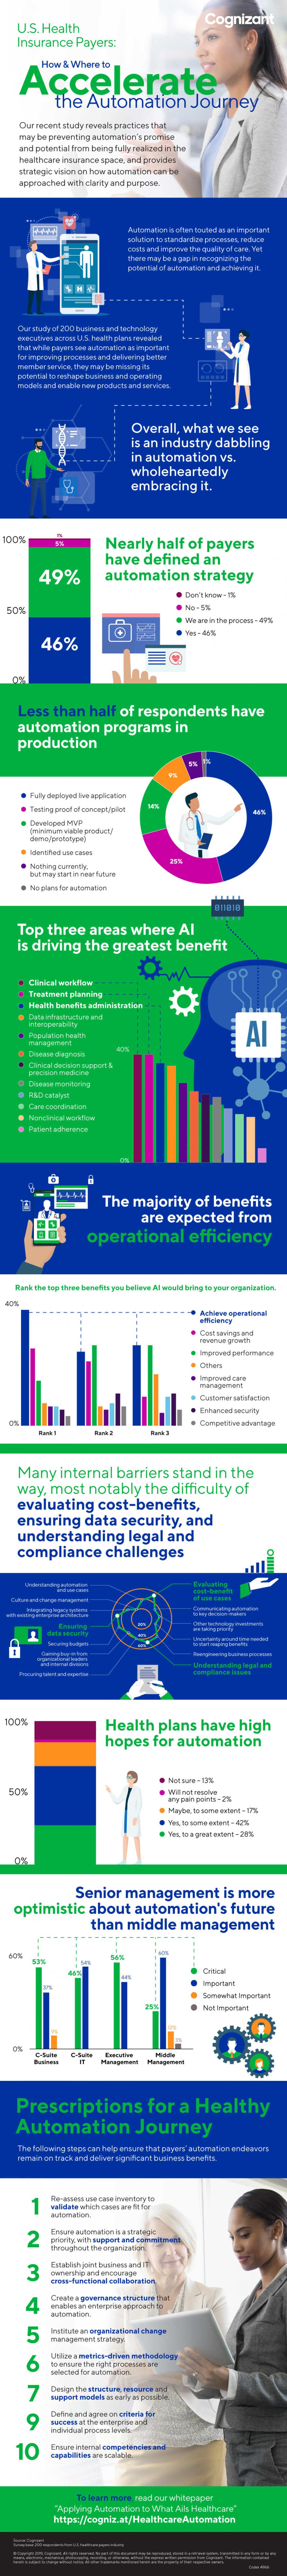 10 Steps to Revitalize Healthcare Payer Automation Infographic